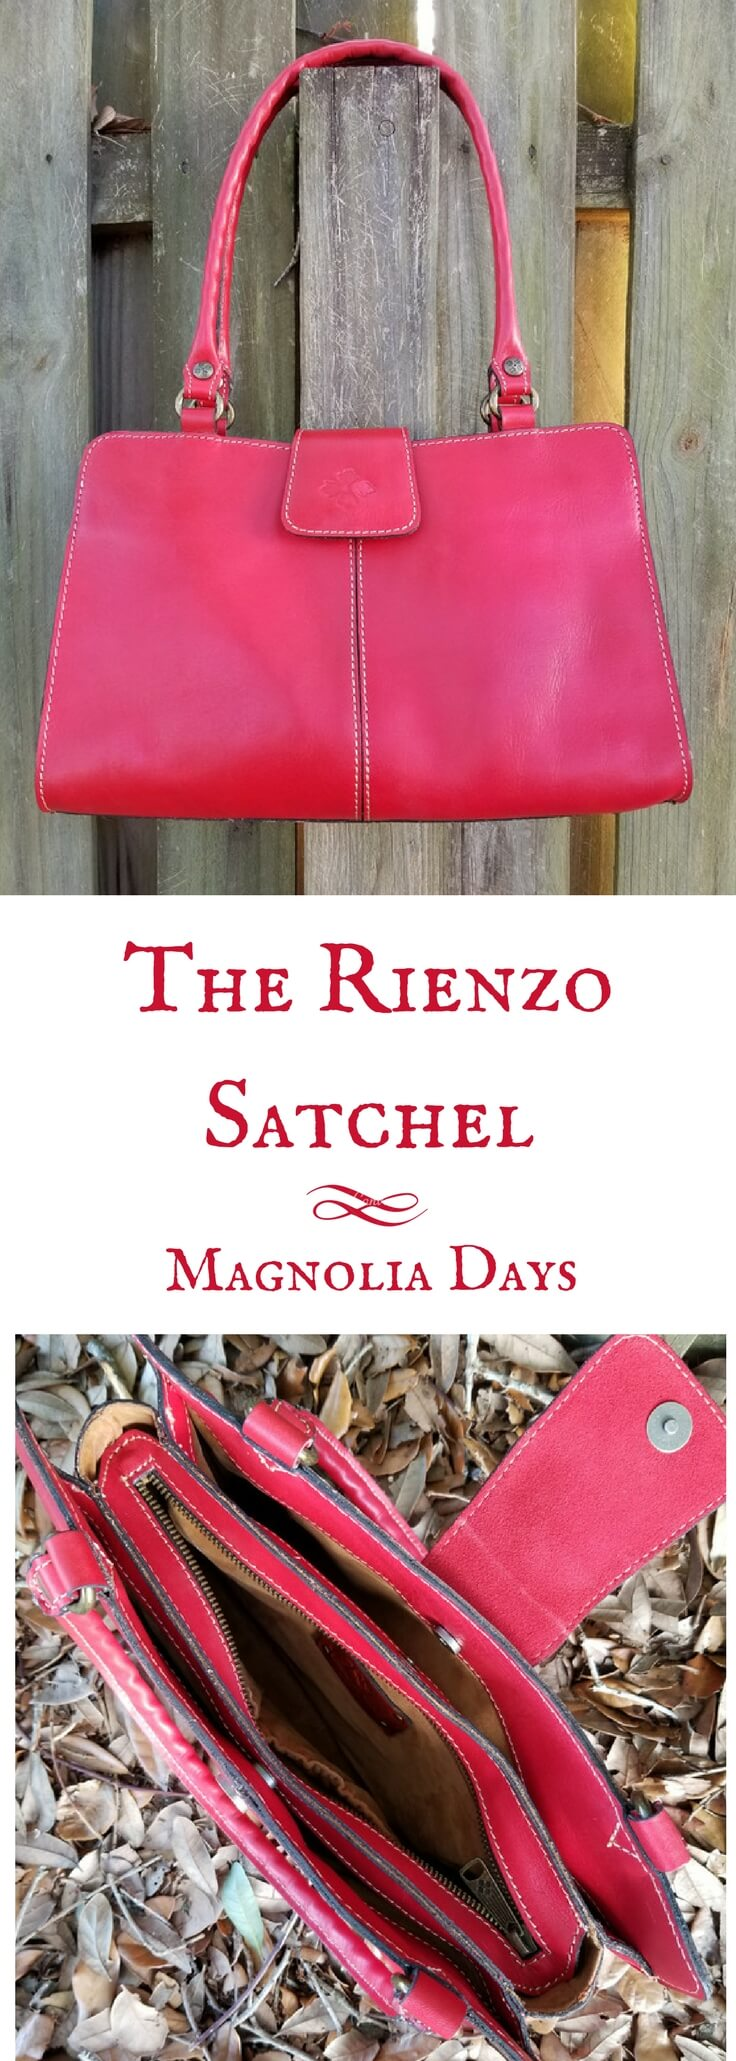 Made from Italian leather, the Rienzo satchel by Patricia Nash Designs comes in a variety of colors. Get an up close look at my Rienzo satchel, inside and out, in this handbag review.